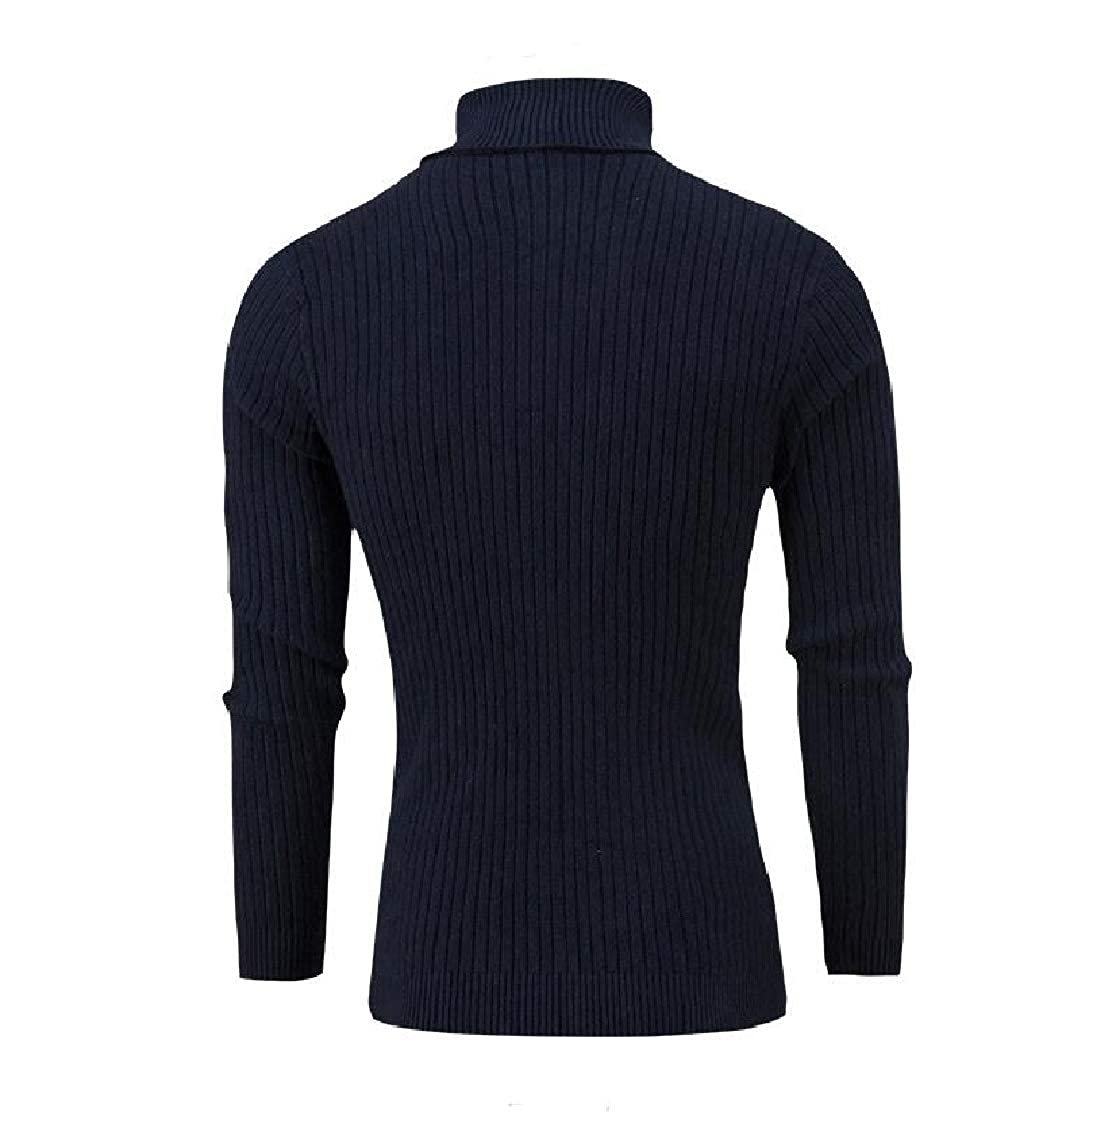 Hajotrawa Mens Jumper Juniors Pullover Turtle Neck Knitted Cable Sweater